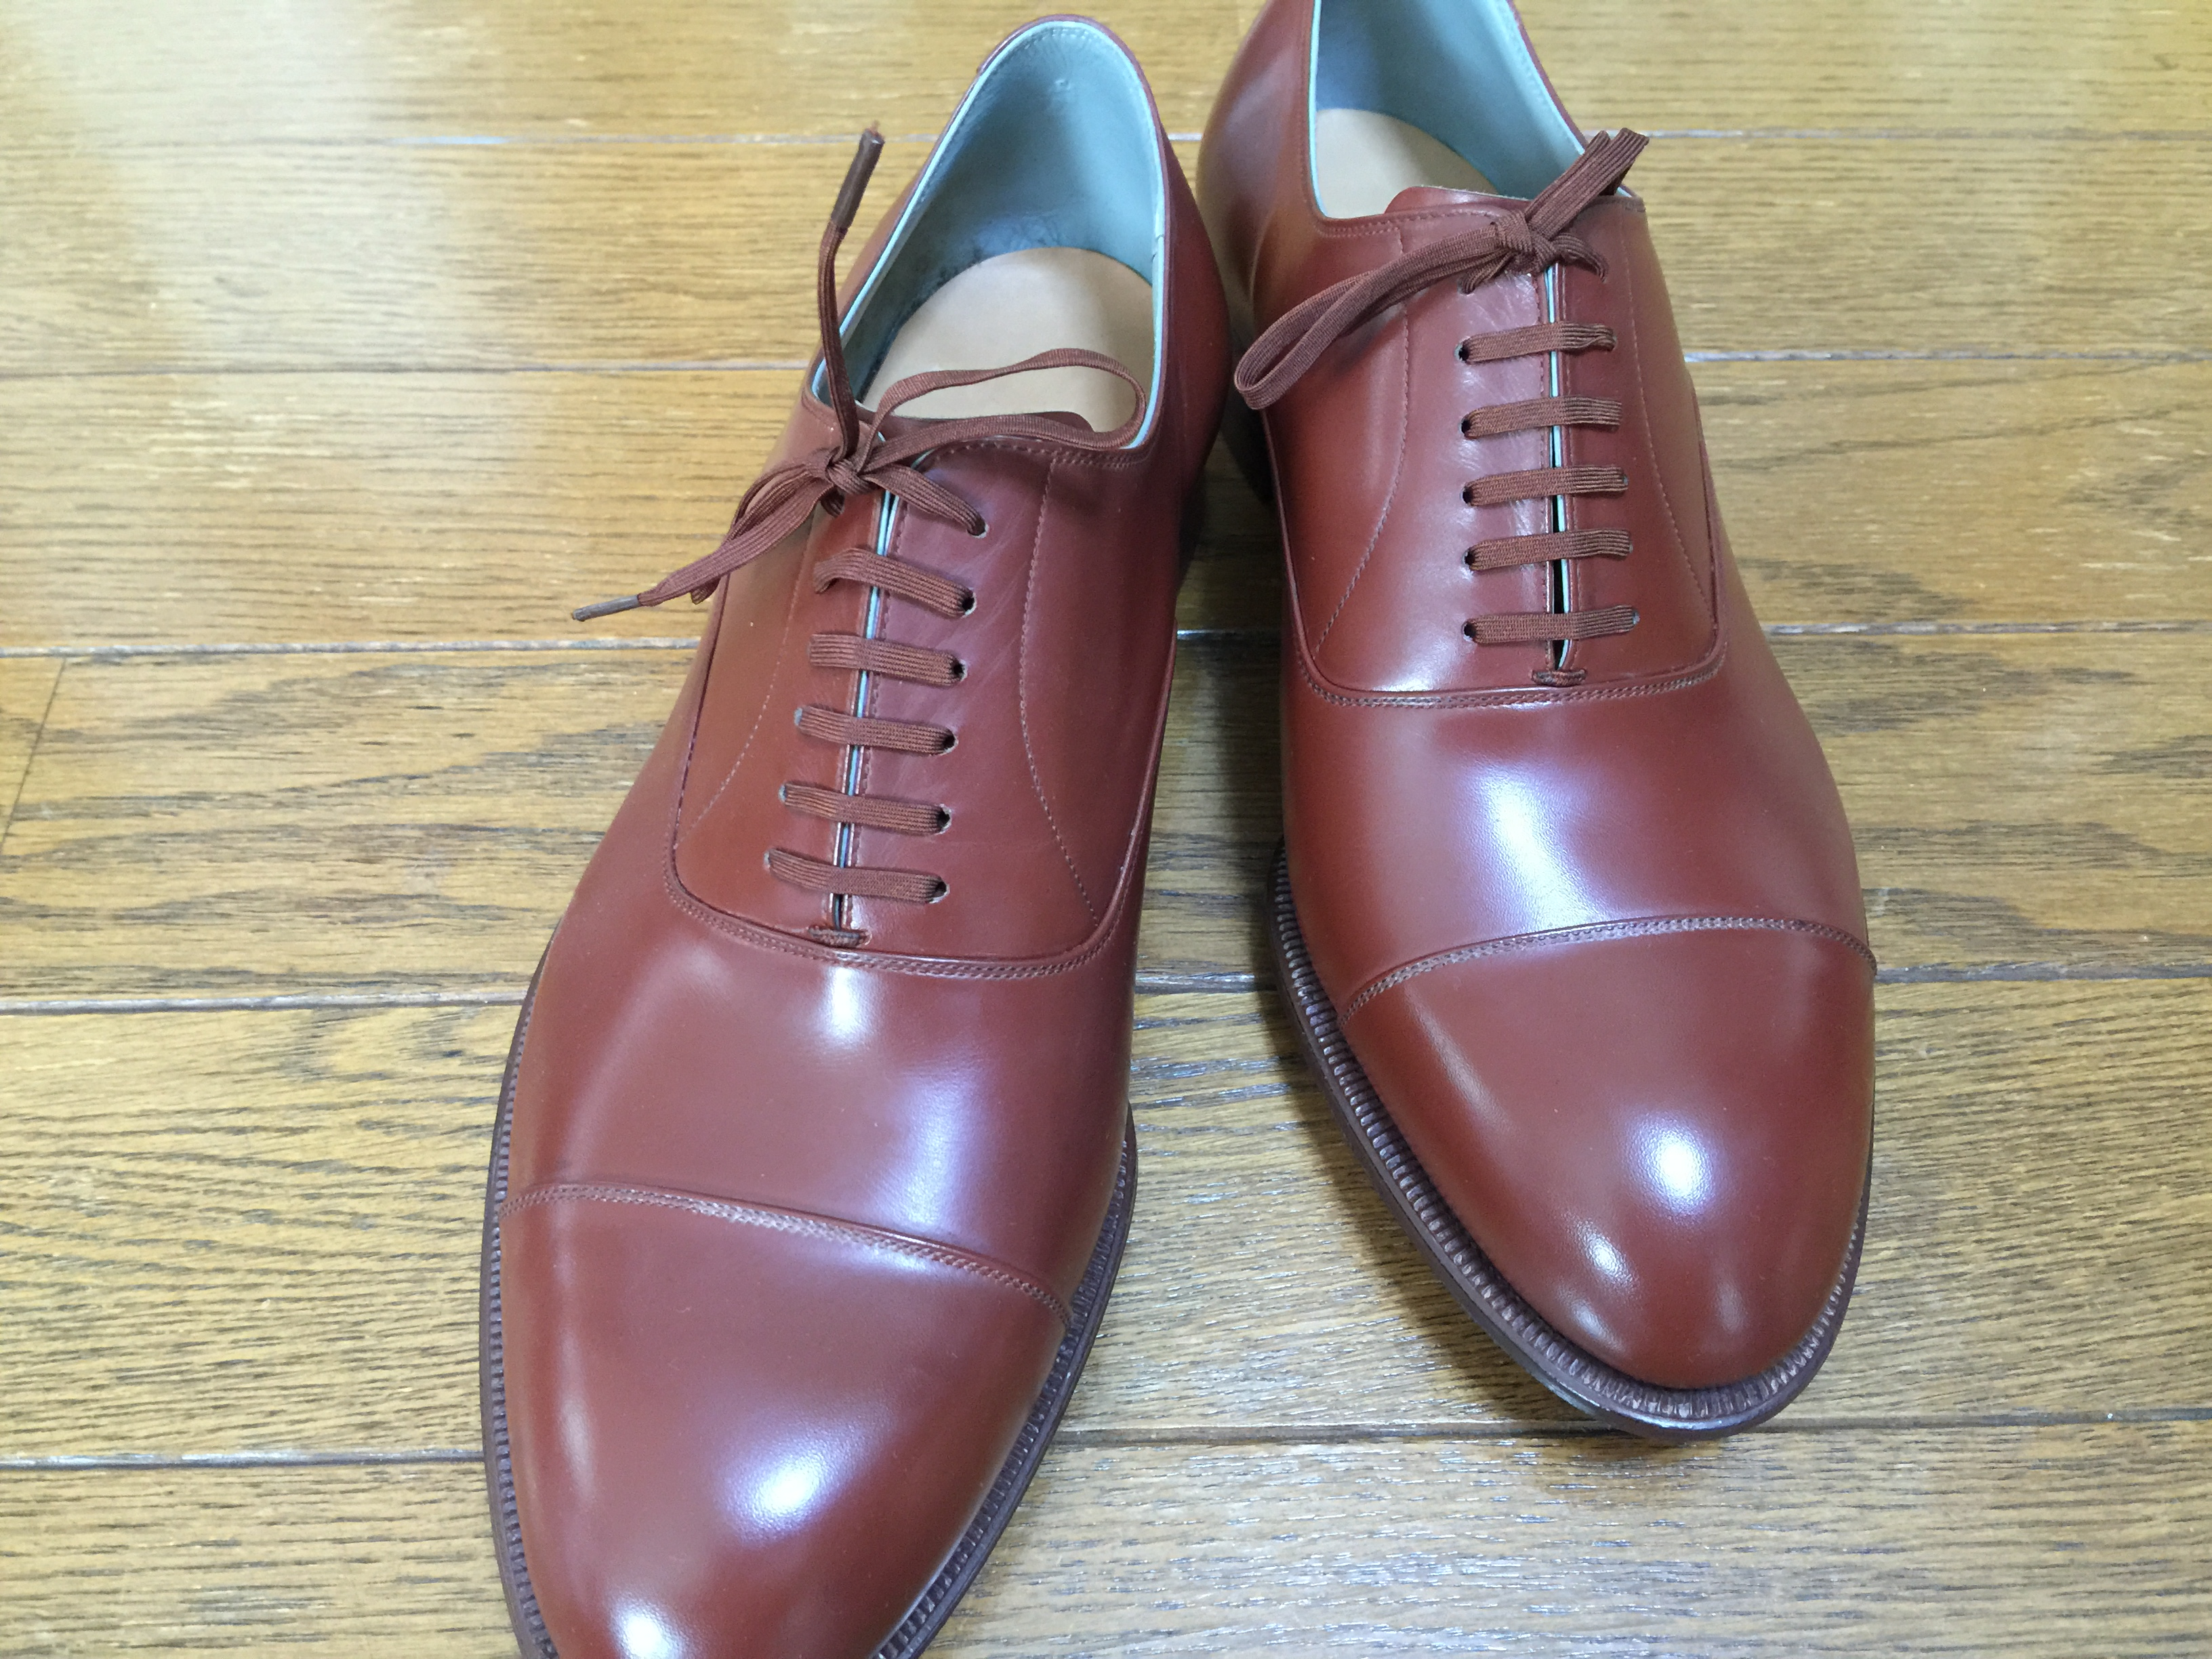 0375-201411_sanko_seika_shoes01